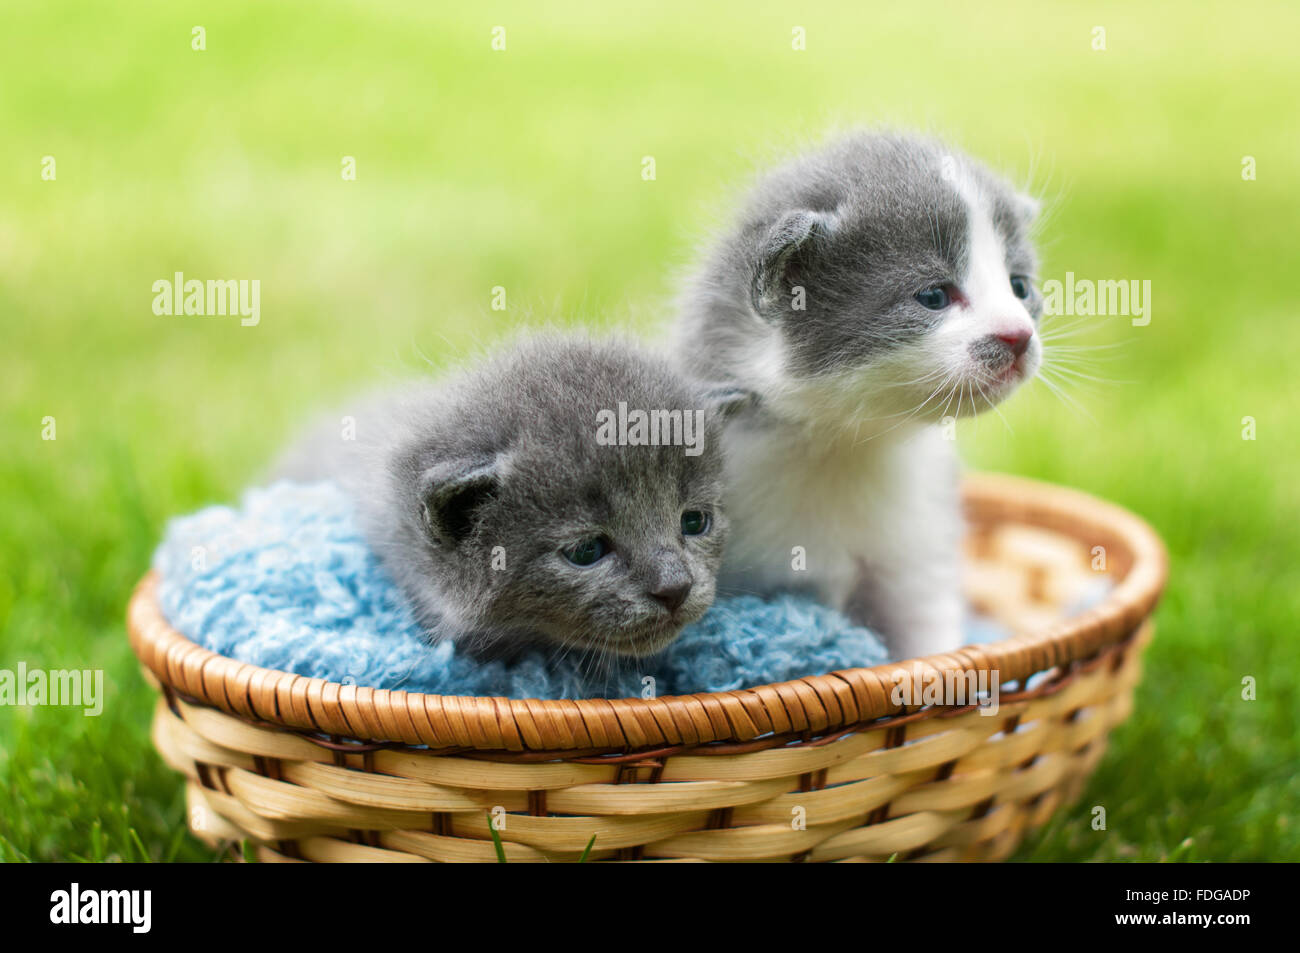 Two gray and white kittens in a basket - Stock Image